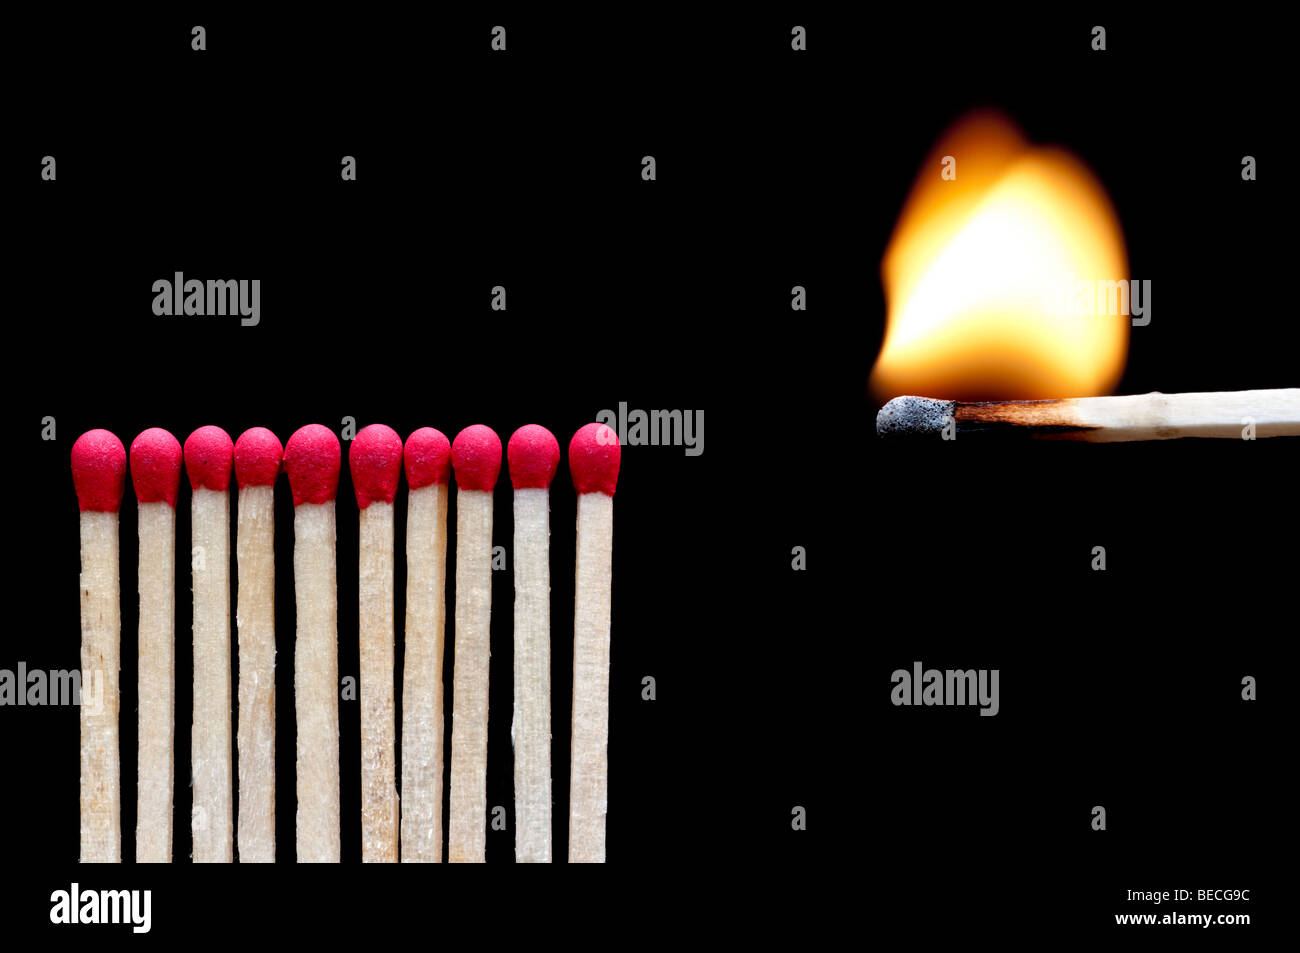 A burning match near other matches on black - Stock Image